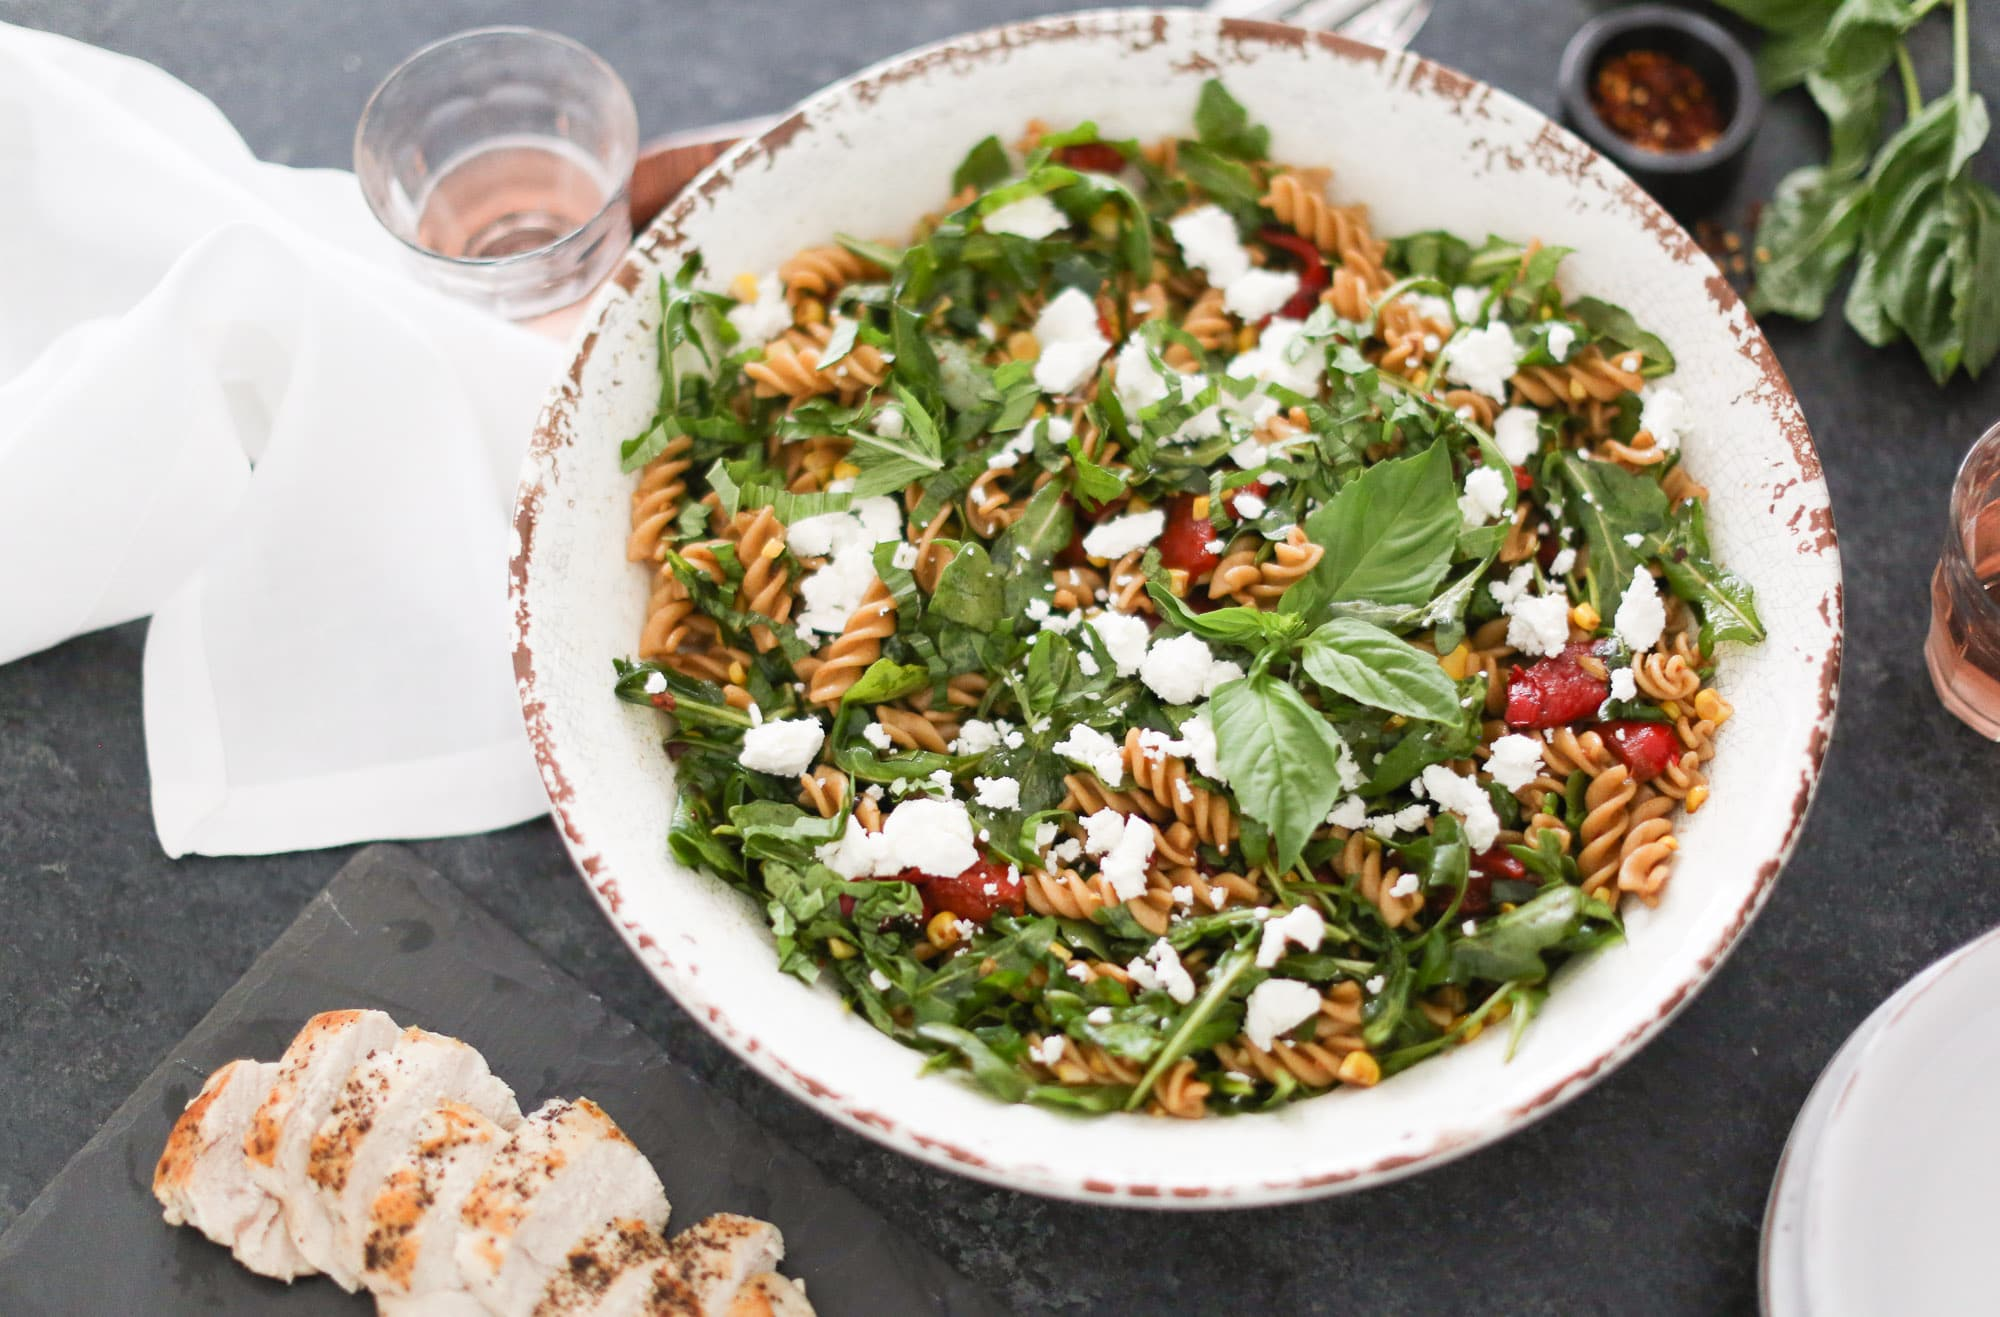 Pasta Salad with Arugula, Roasted Red Peppers, and Sweet Corn